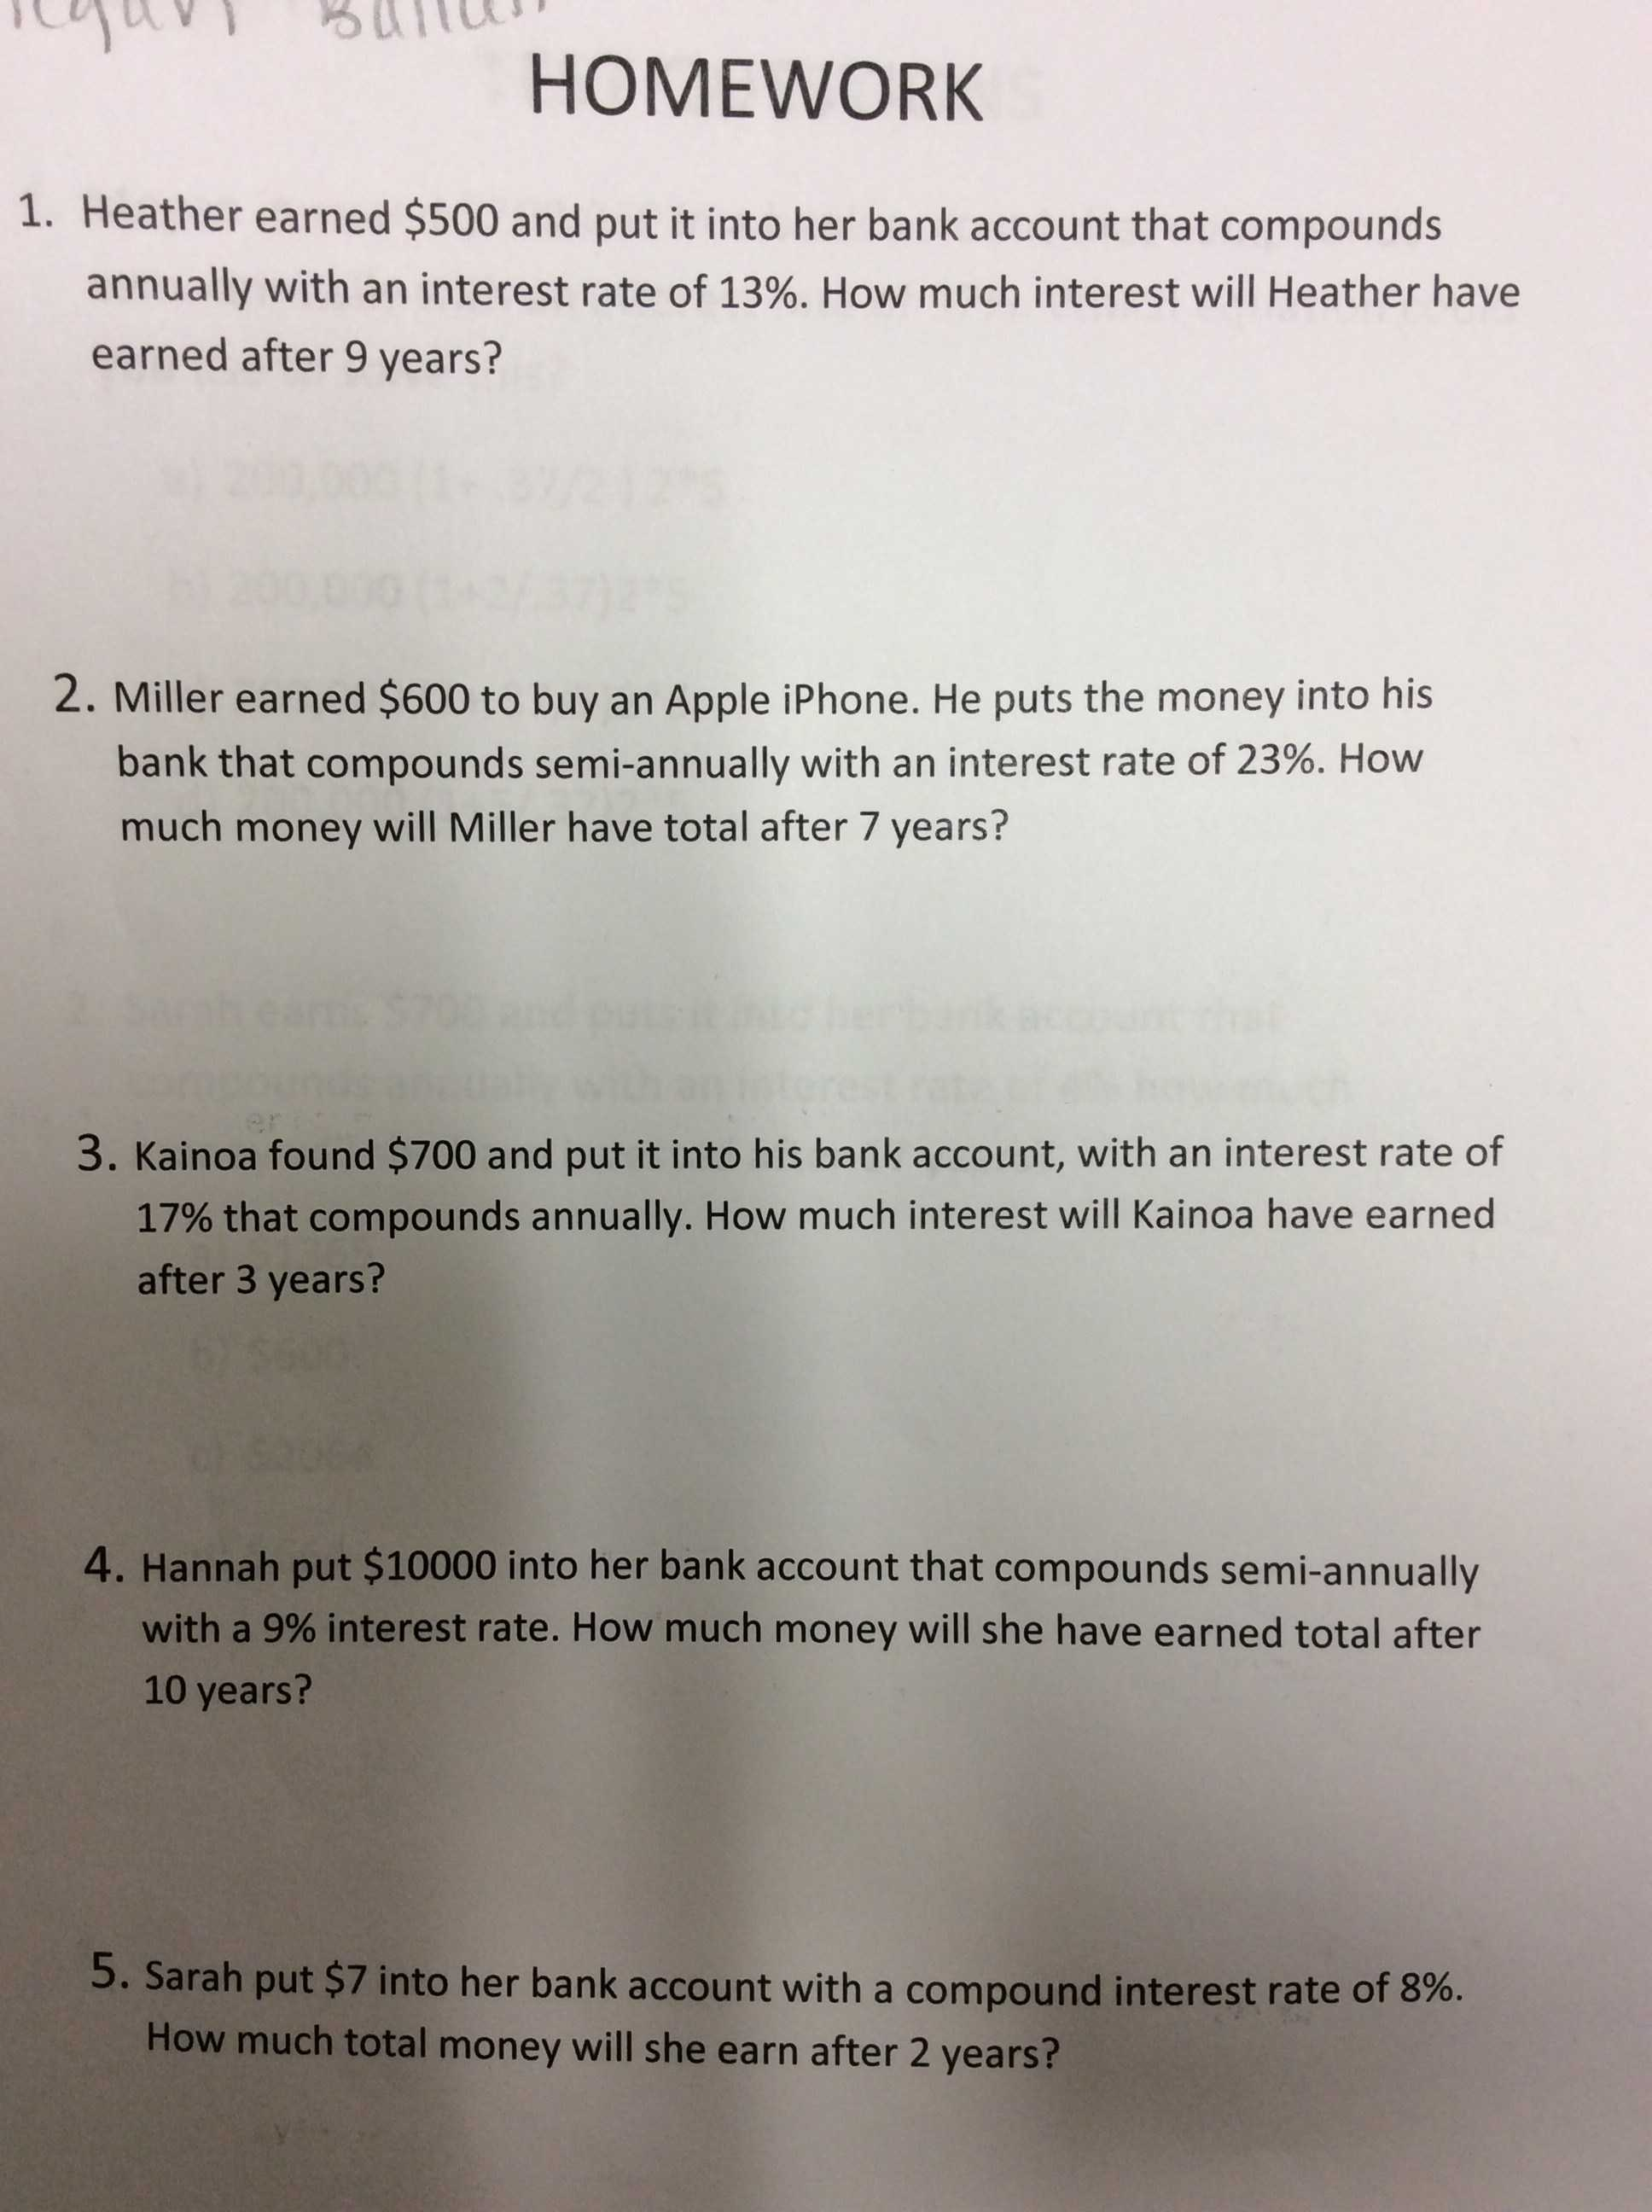 Simple and Compound Interest Practice Worksheet Answer Key Along with Gorzycki Middle School